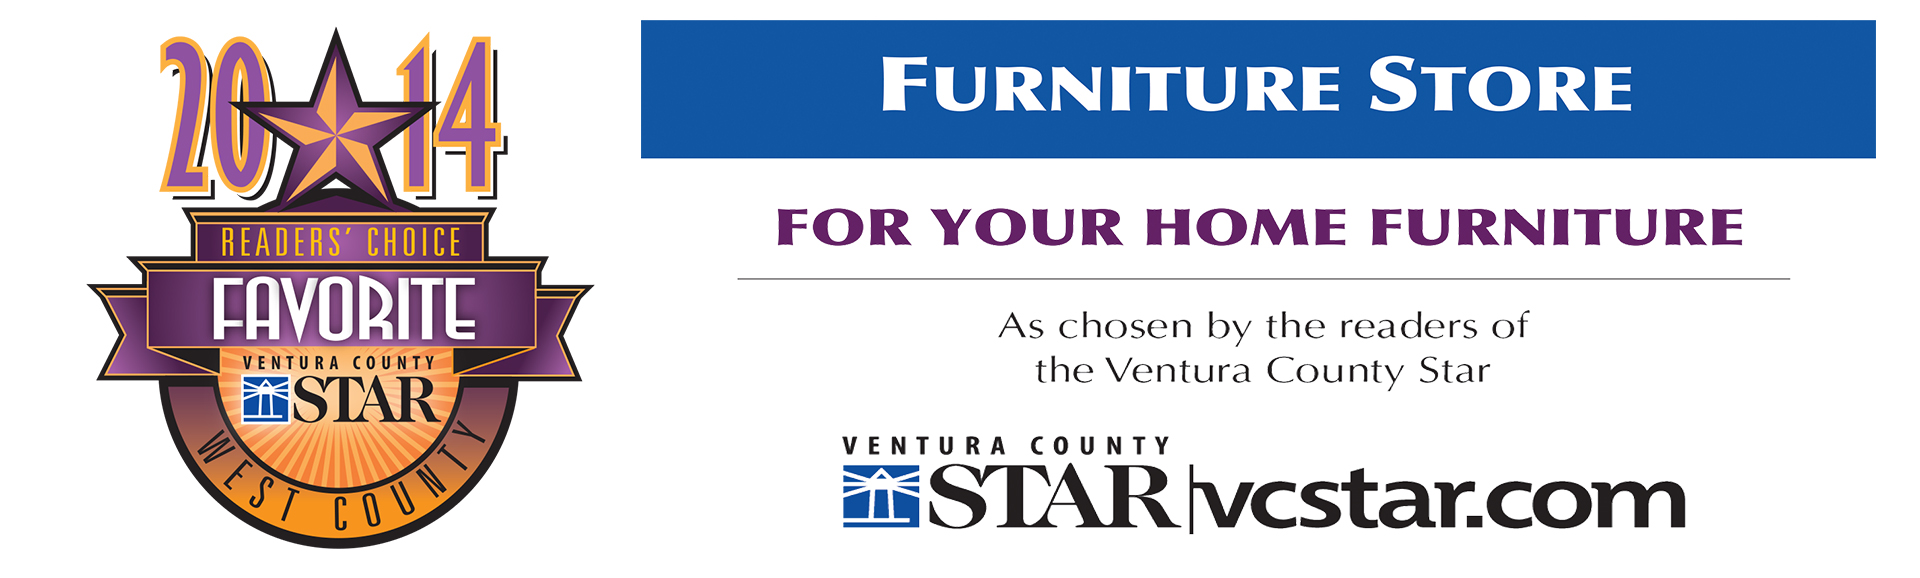 Ventura Furniture Santa Barbara Furniture For Your Home Since 1976